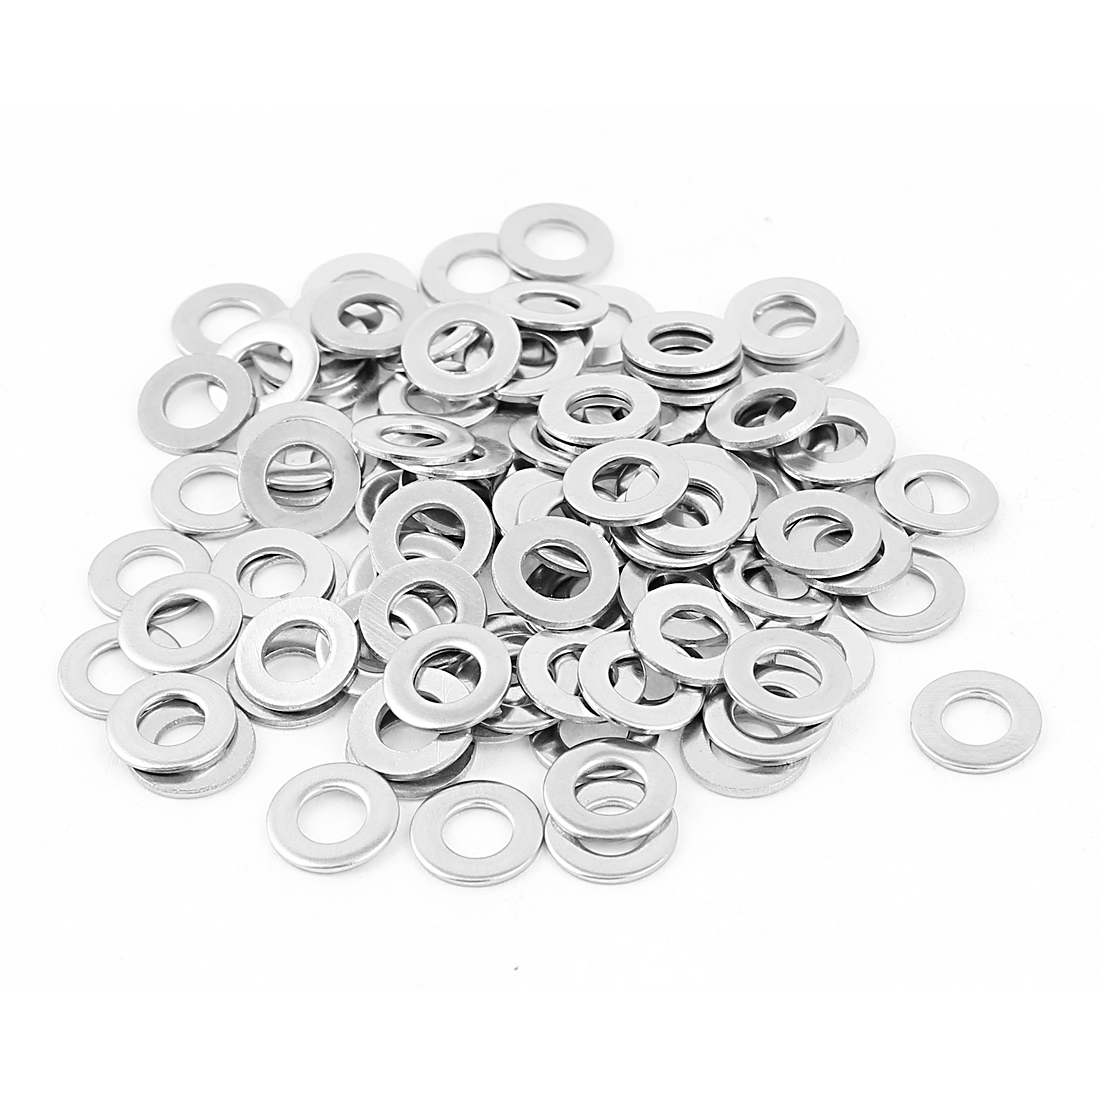 Uxcell M5 x 10mm x 1mm 304 Stainless Steel Flat Washer for Screw Bolt (100-pack)